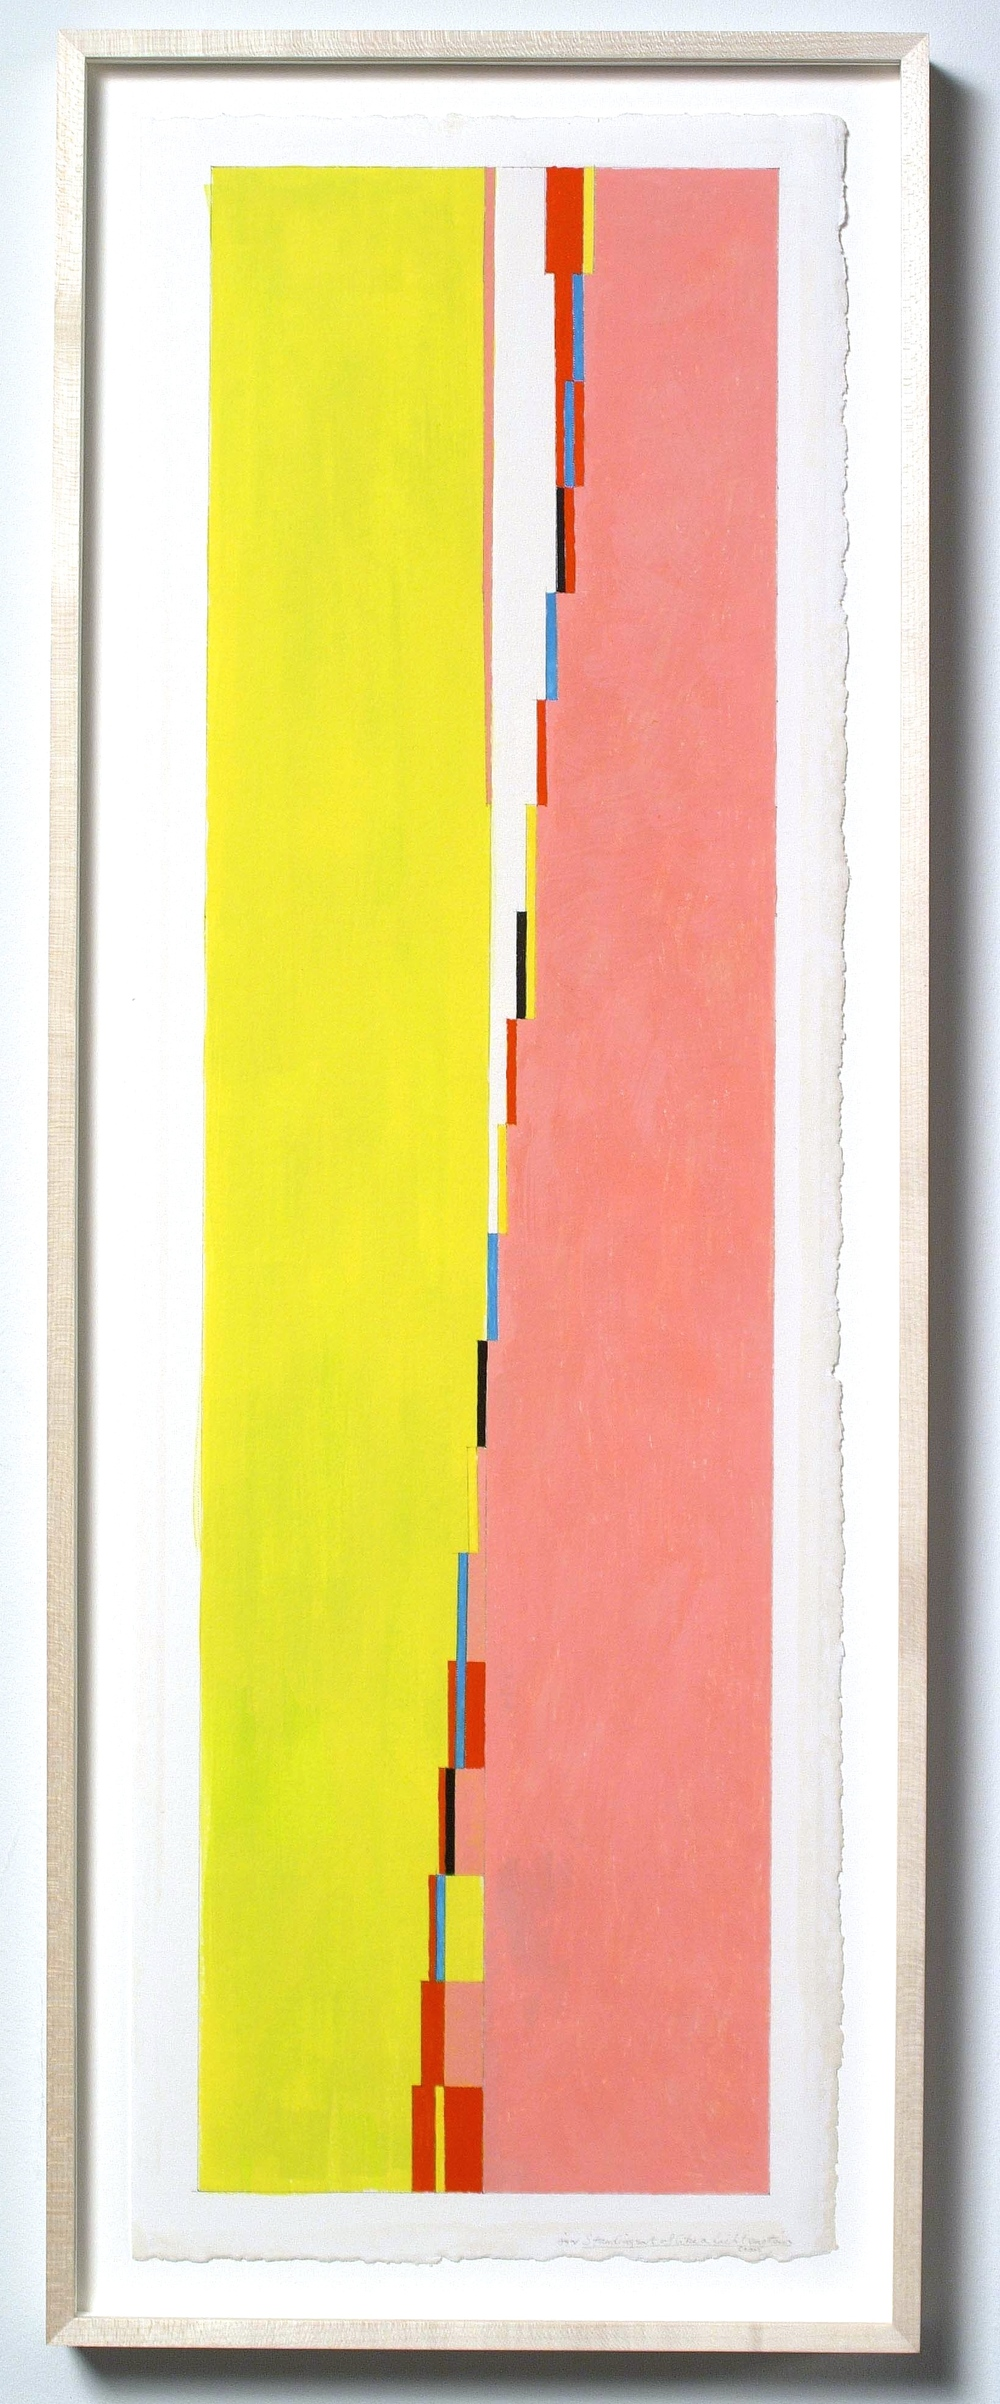 "Standing Sort of Like a Lichtenstein (PG59), 2006, 28 ½"" x 8"" (image), 30x10"" (paper)"